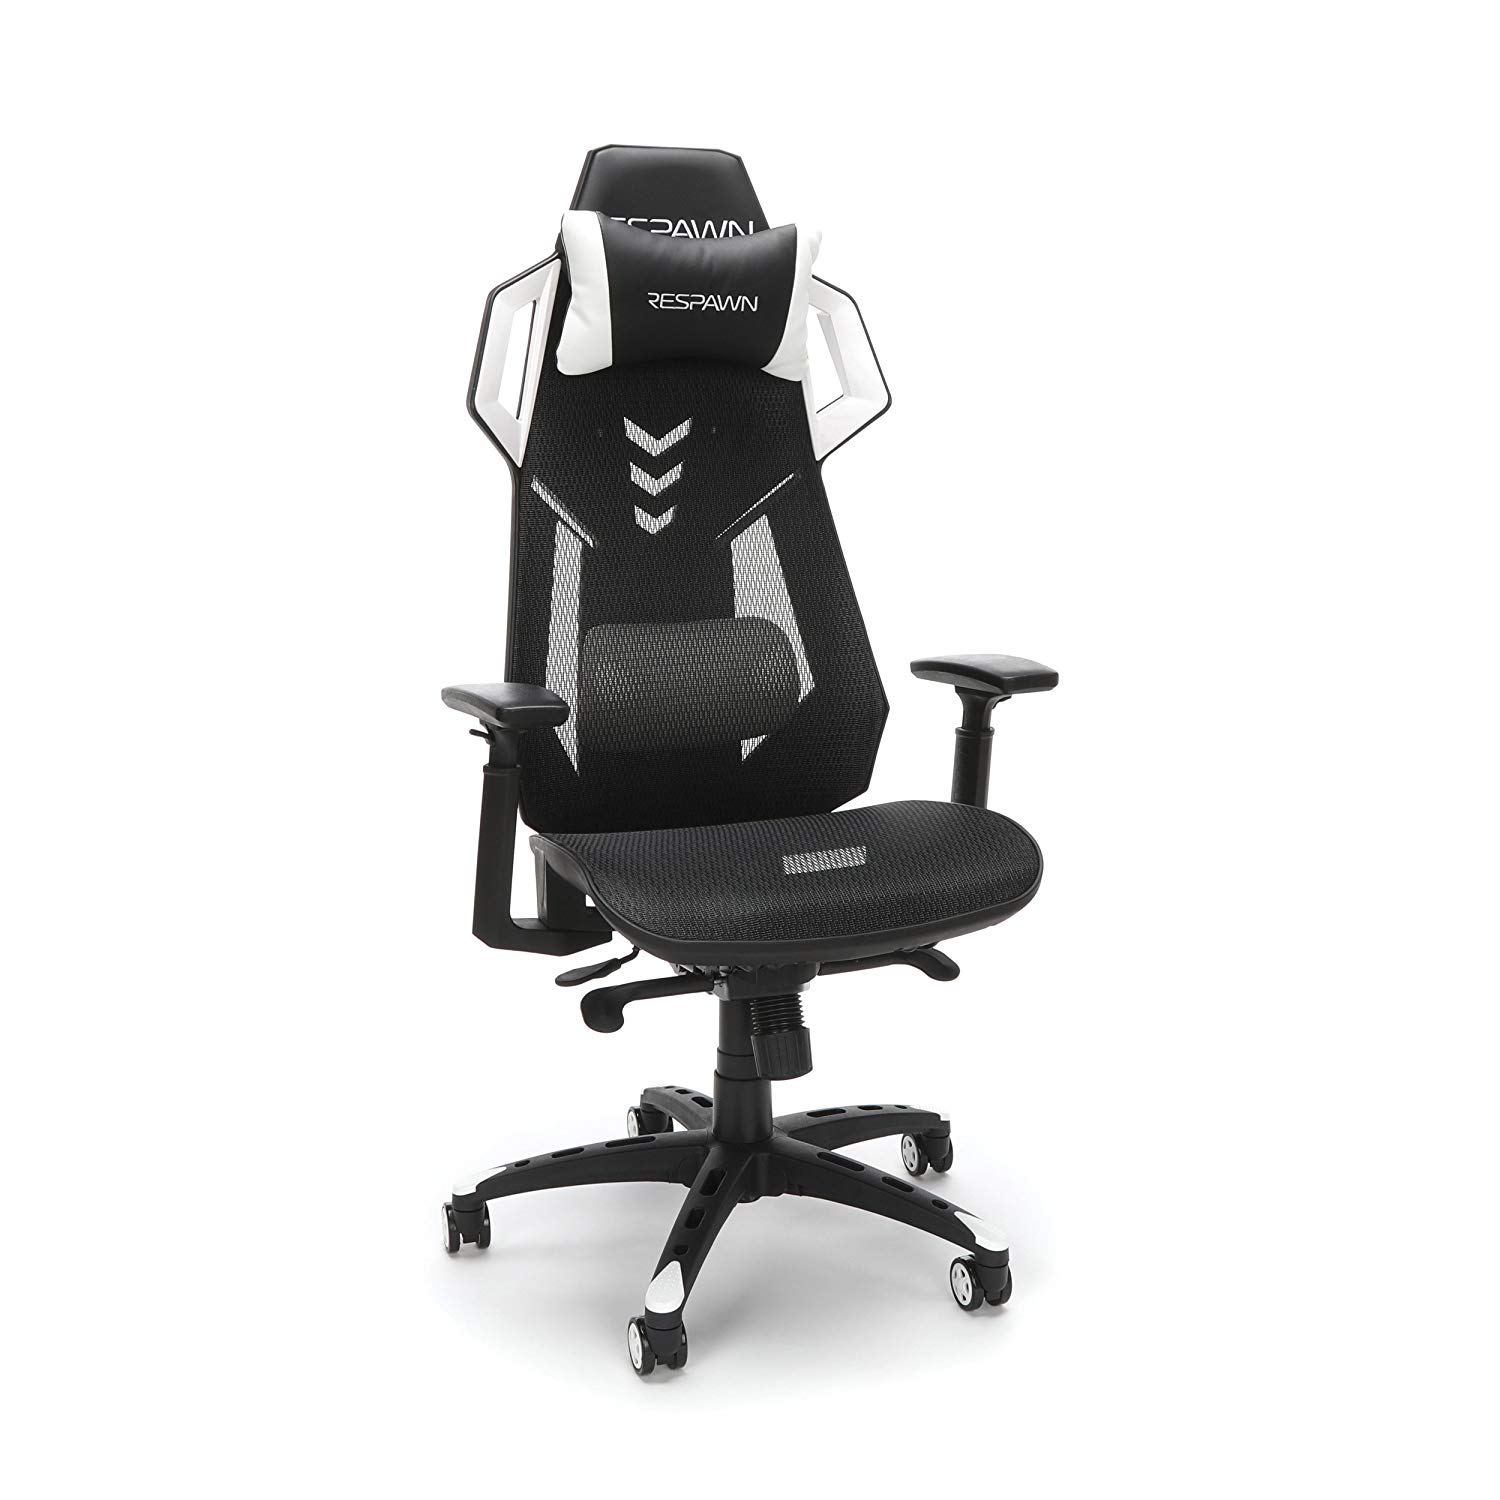 Cheap Mesh Gaming Chair Find Mesh Gaming Chair Deals On